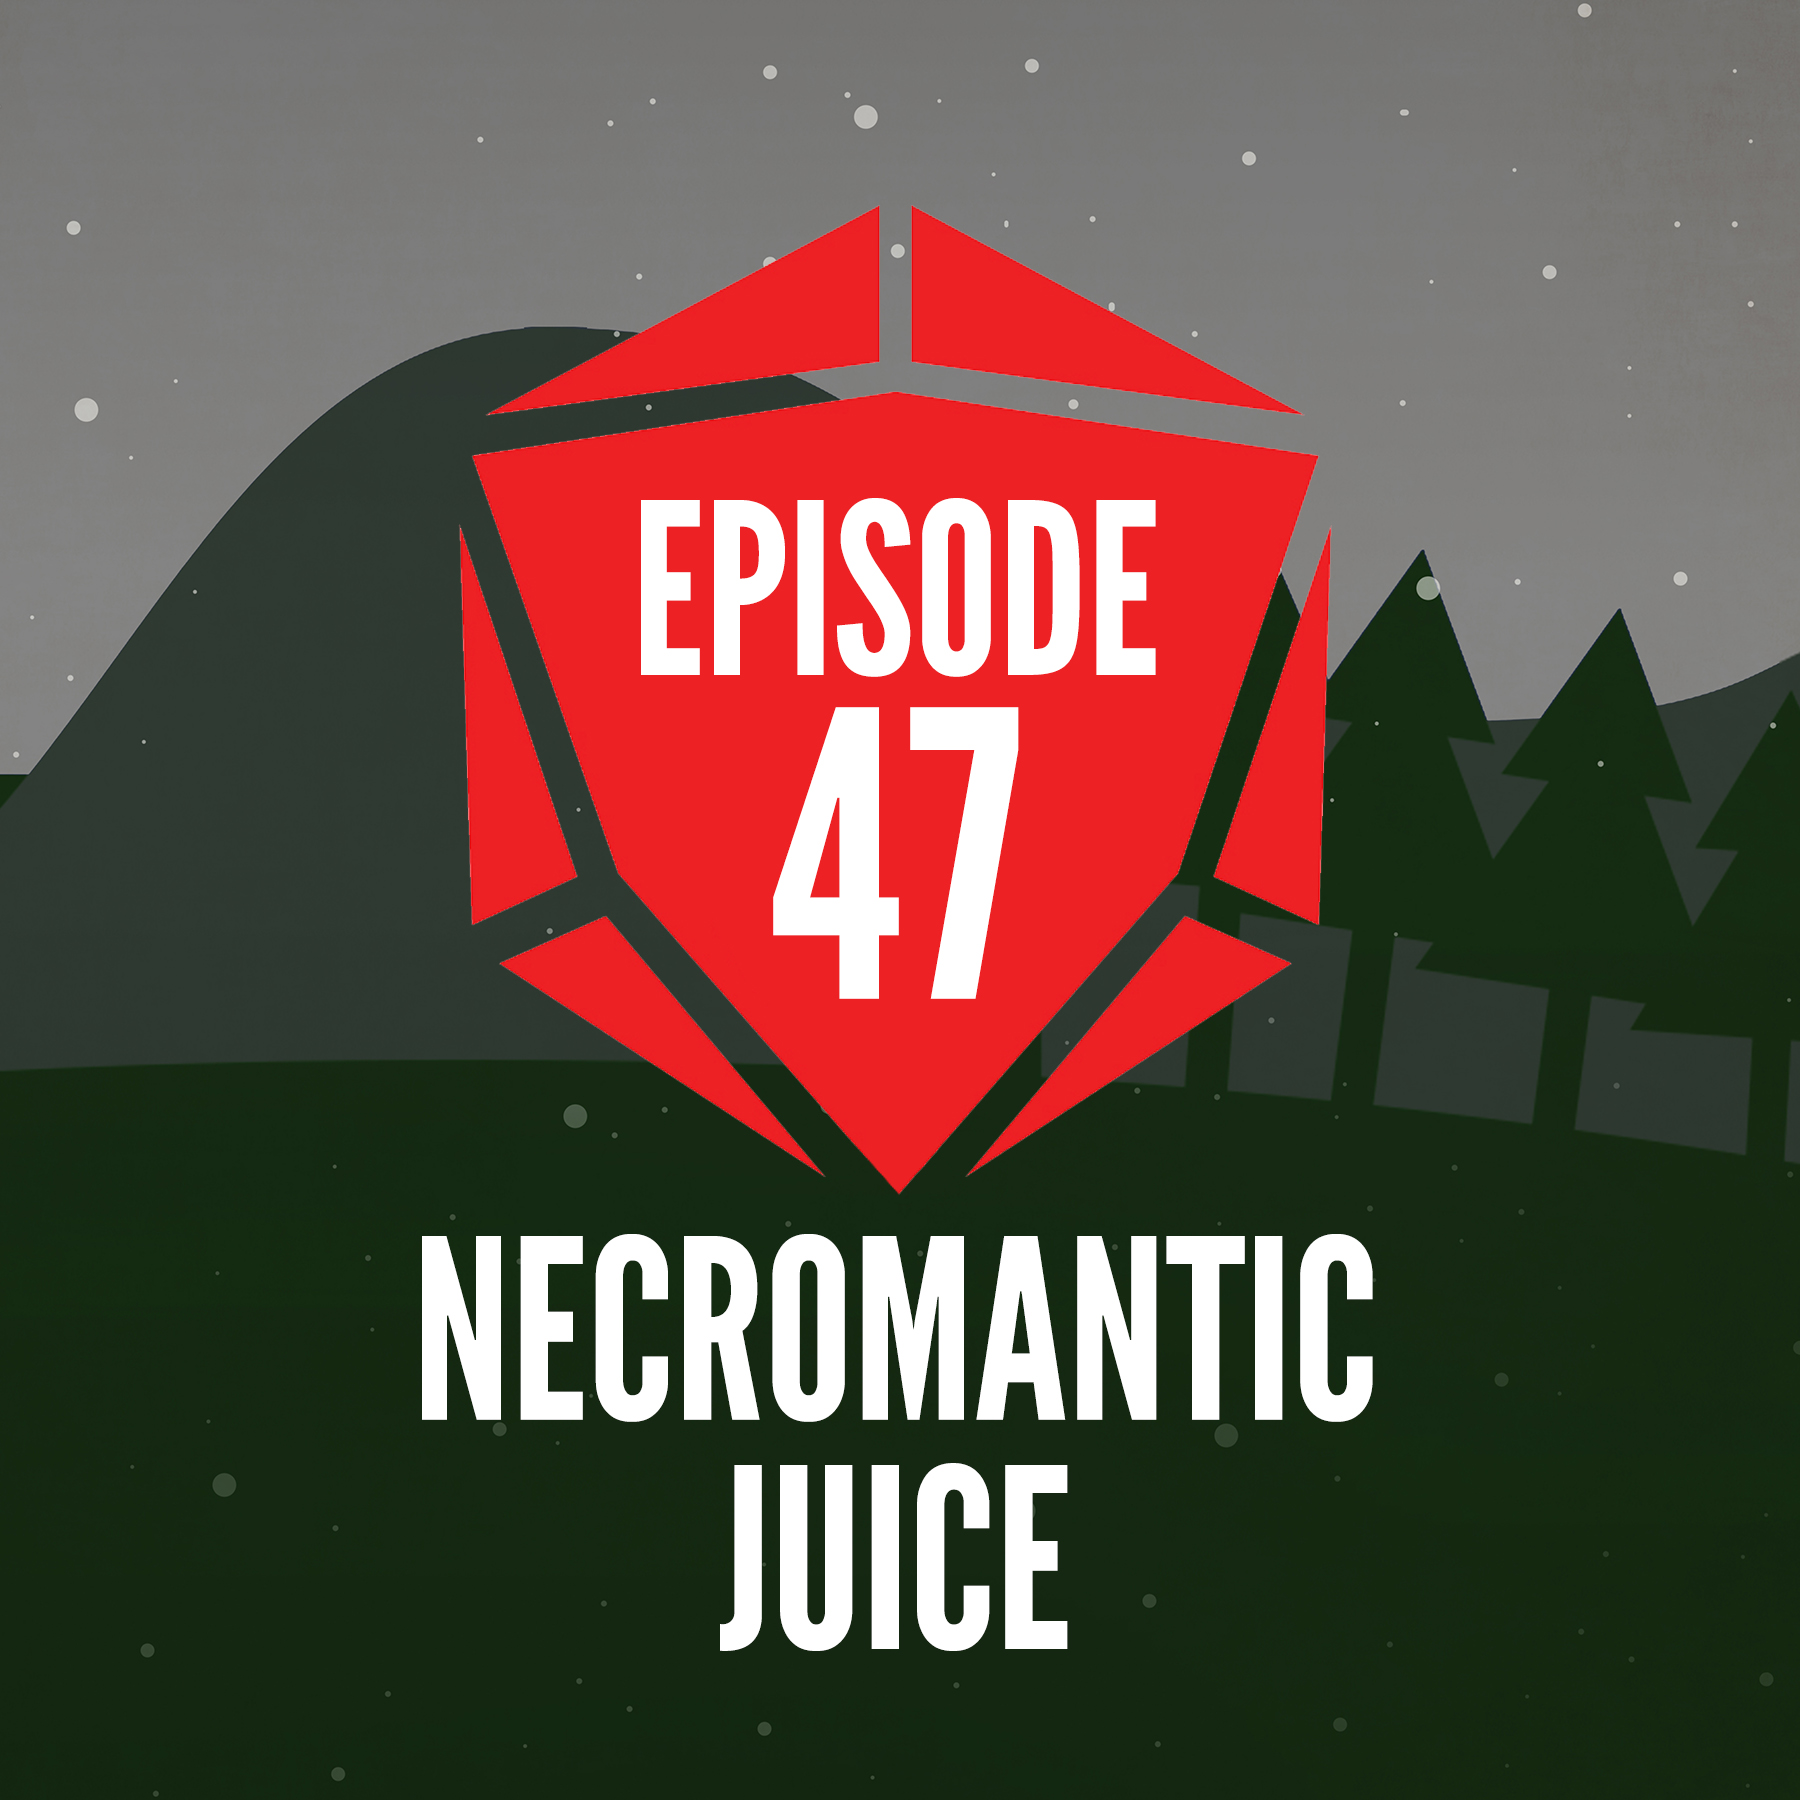 Episode 47: Necromantic Juice